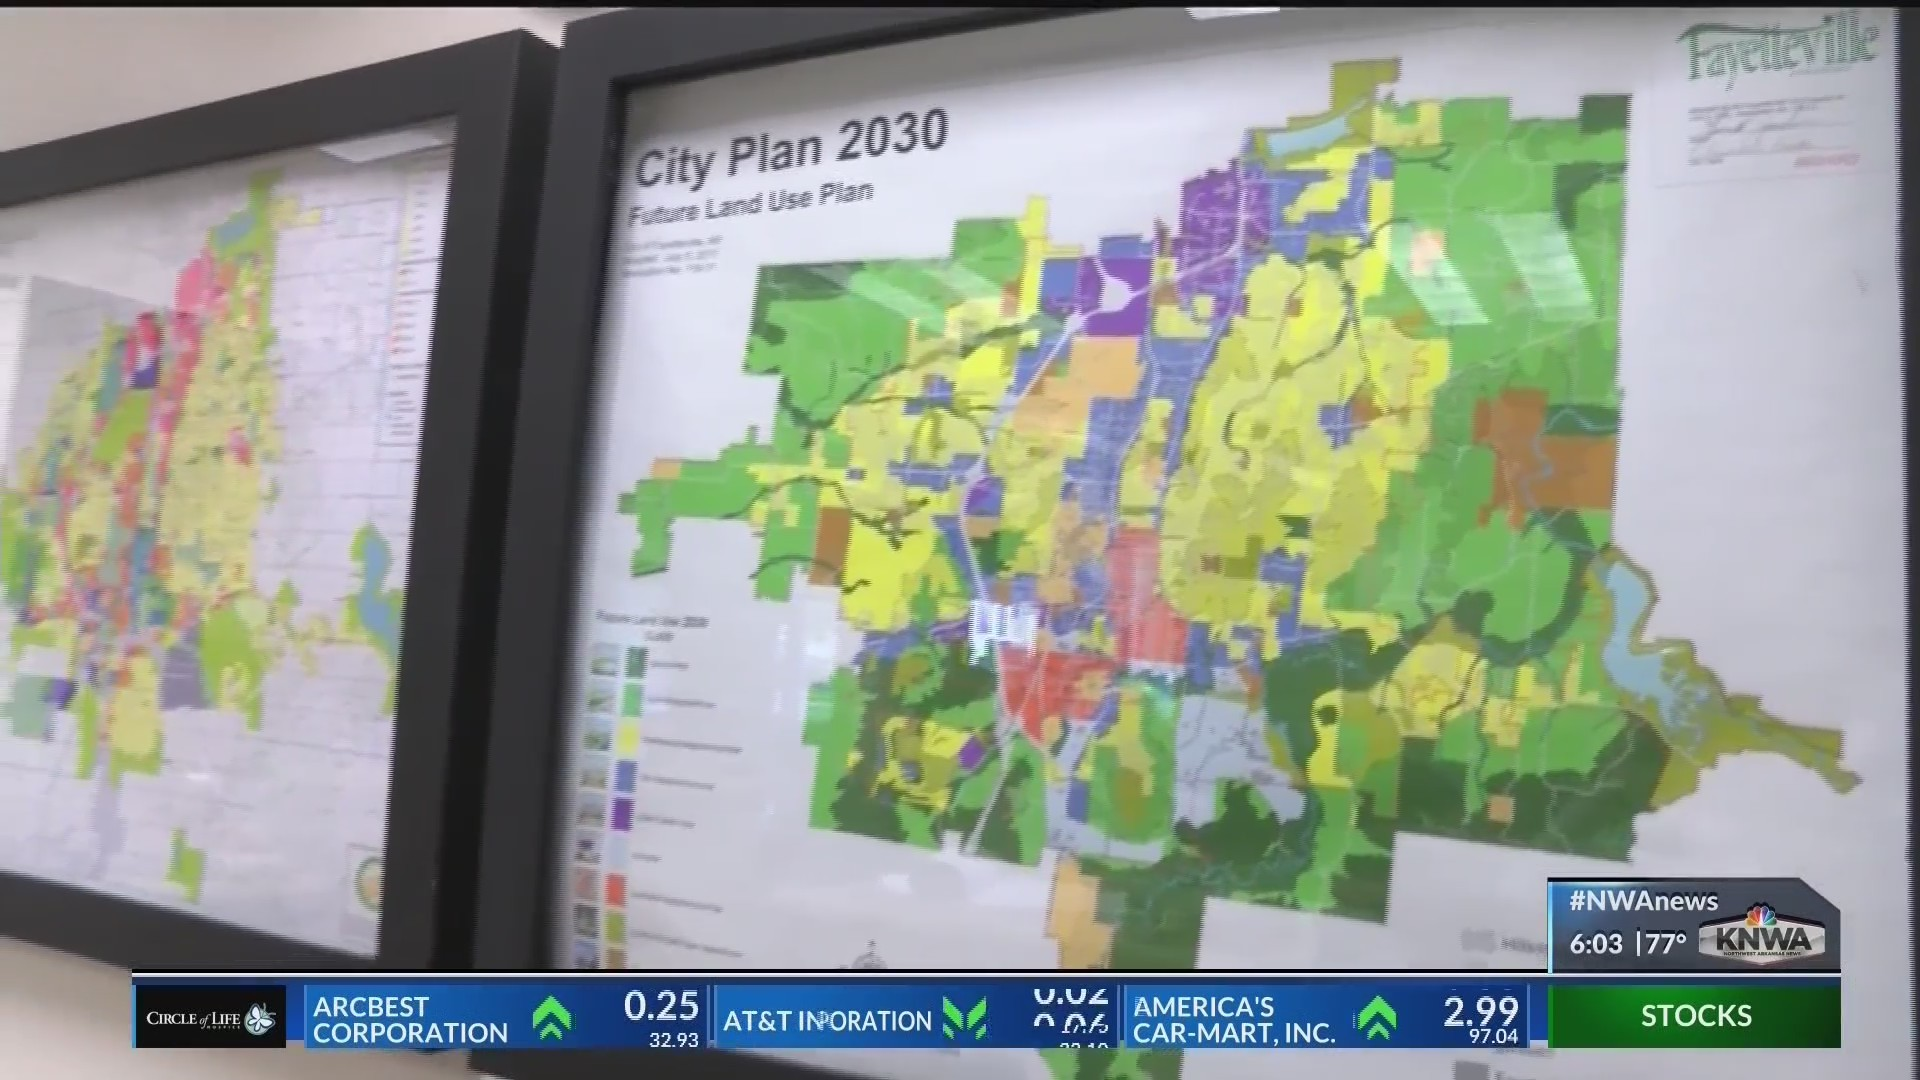 Fayetteville_City_Planners_Look_for_Ways_9_20190424023936